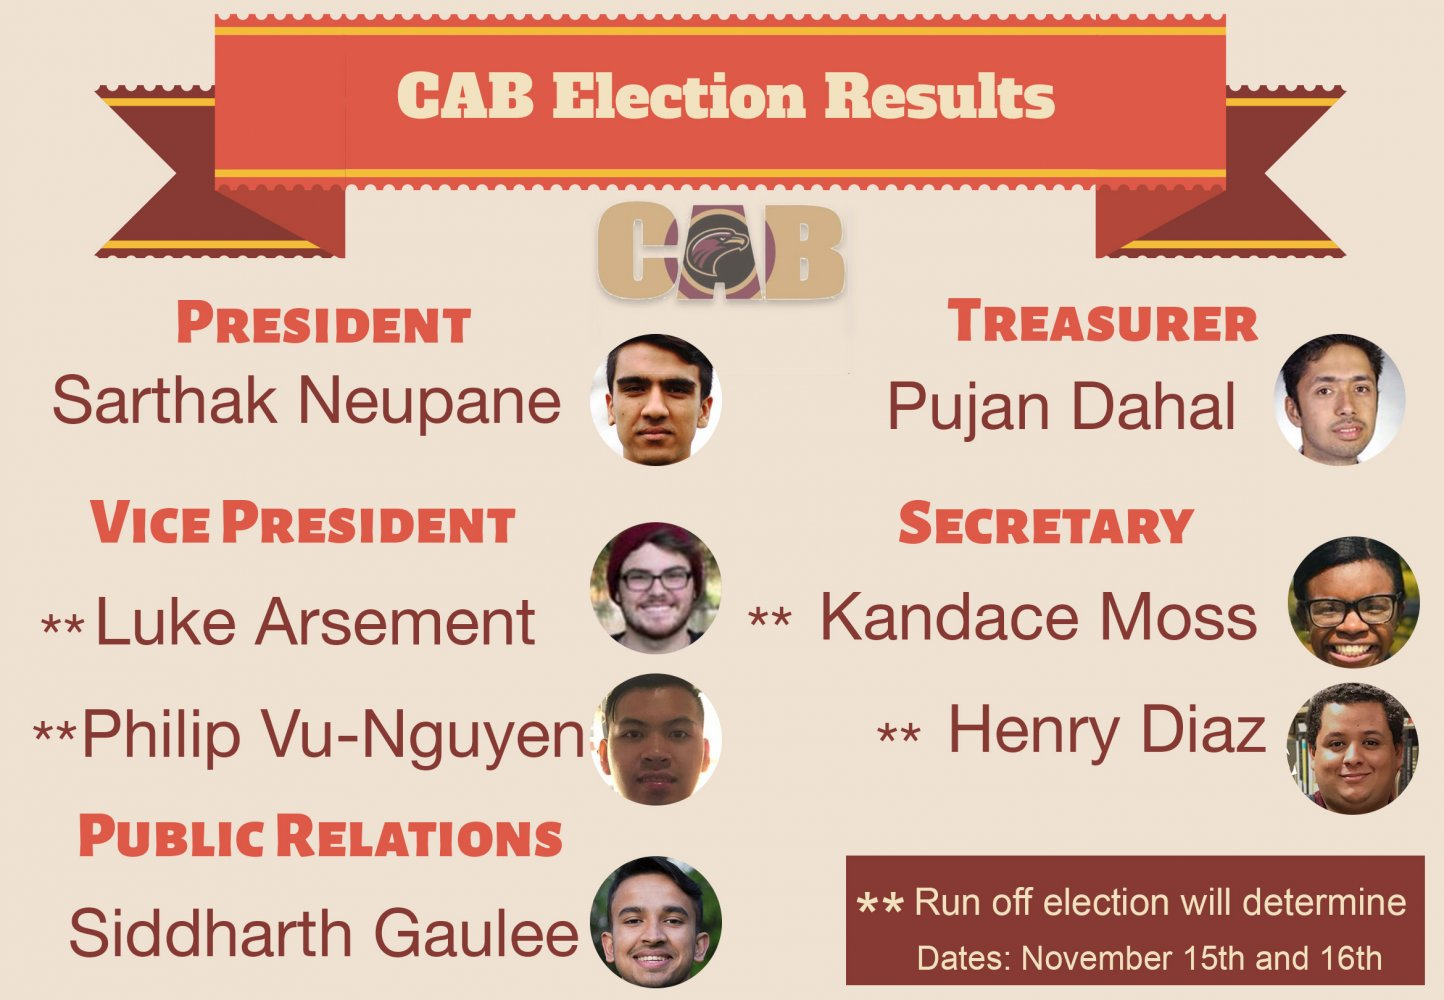 CAB Election Results